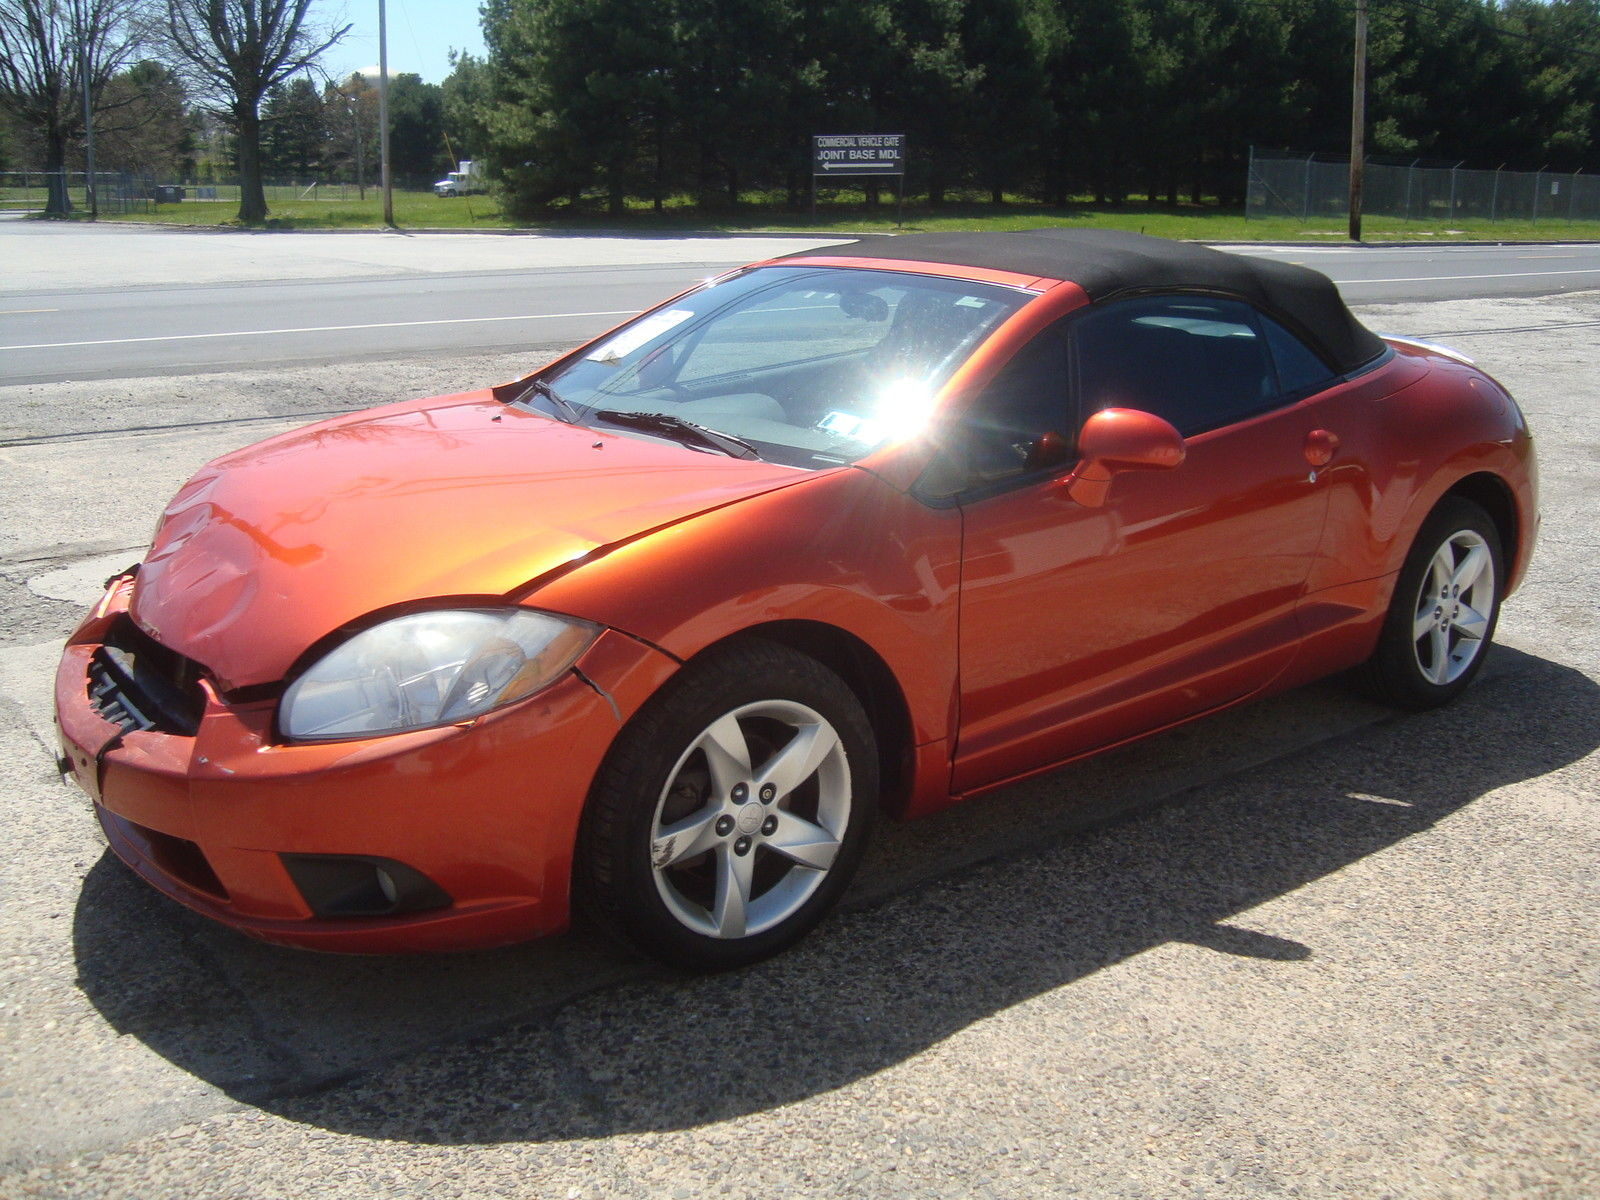 No leaks 2009 Mitsubishi Eclipse Spyder GS Convertible Rebuildable for sale